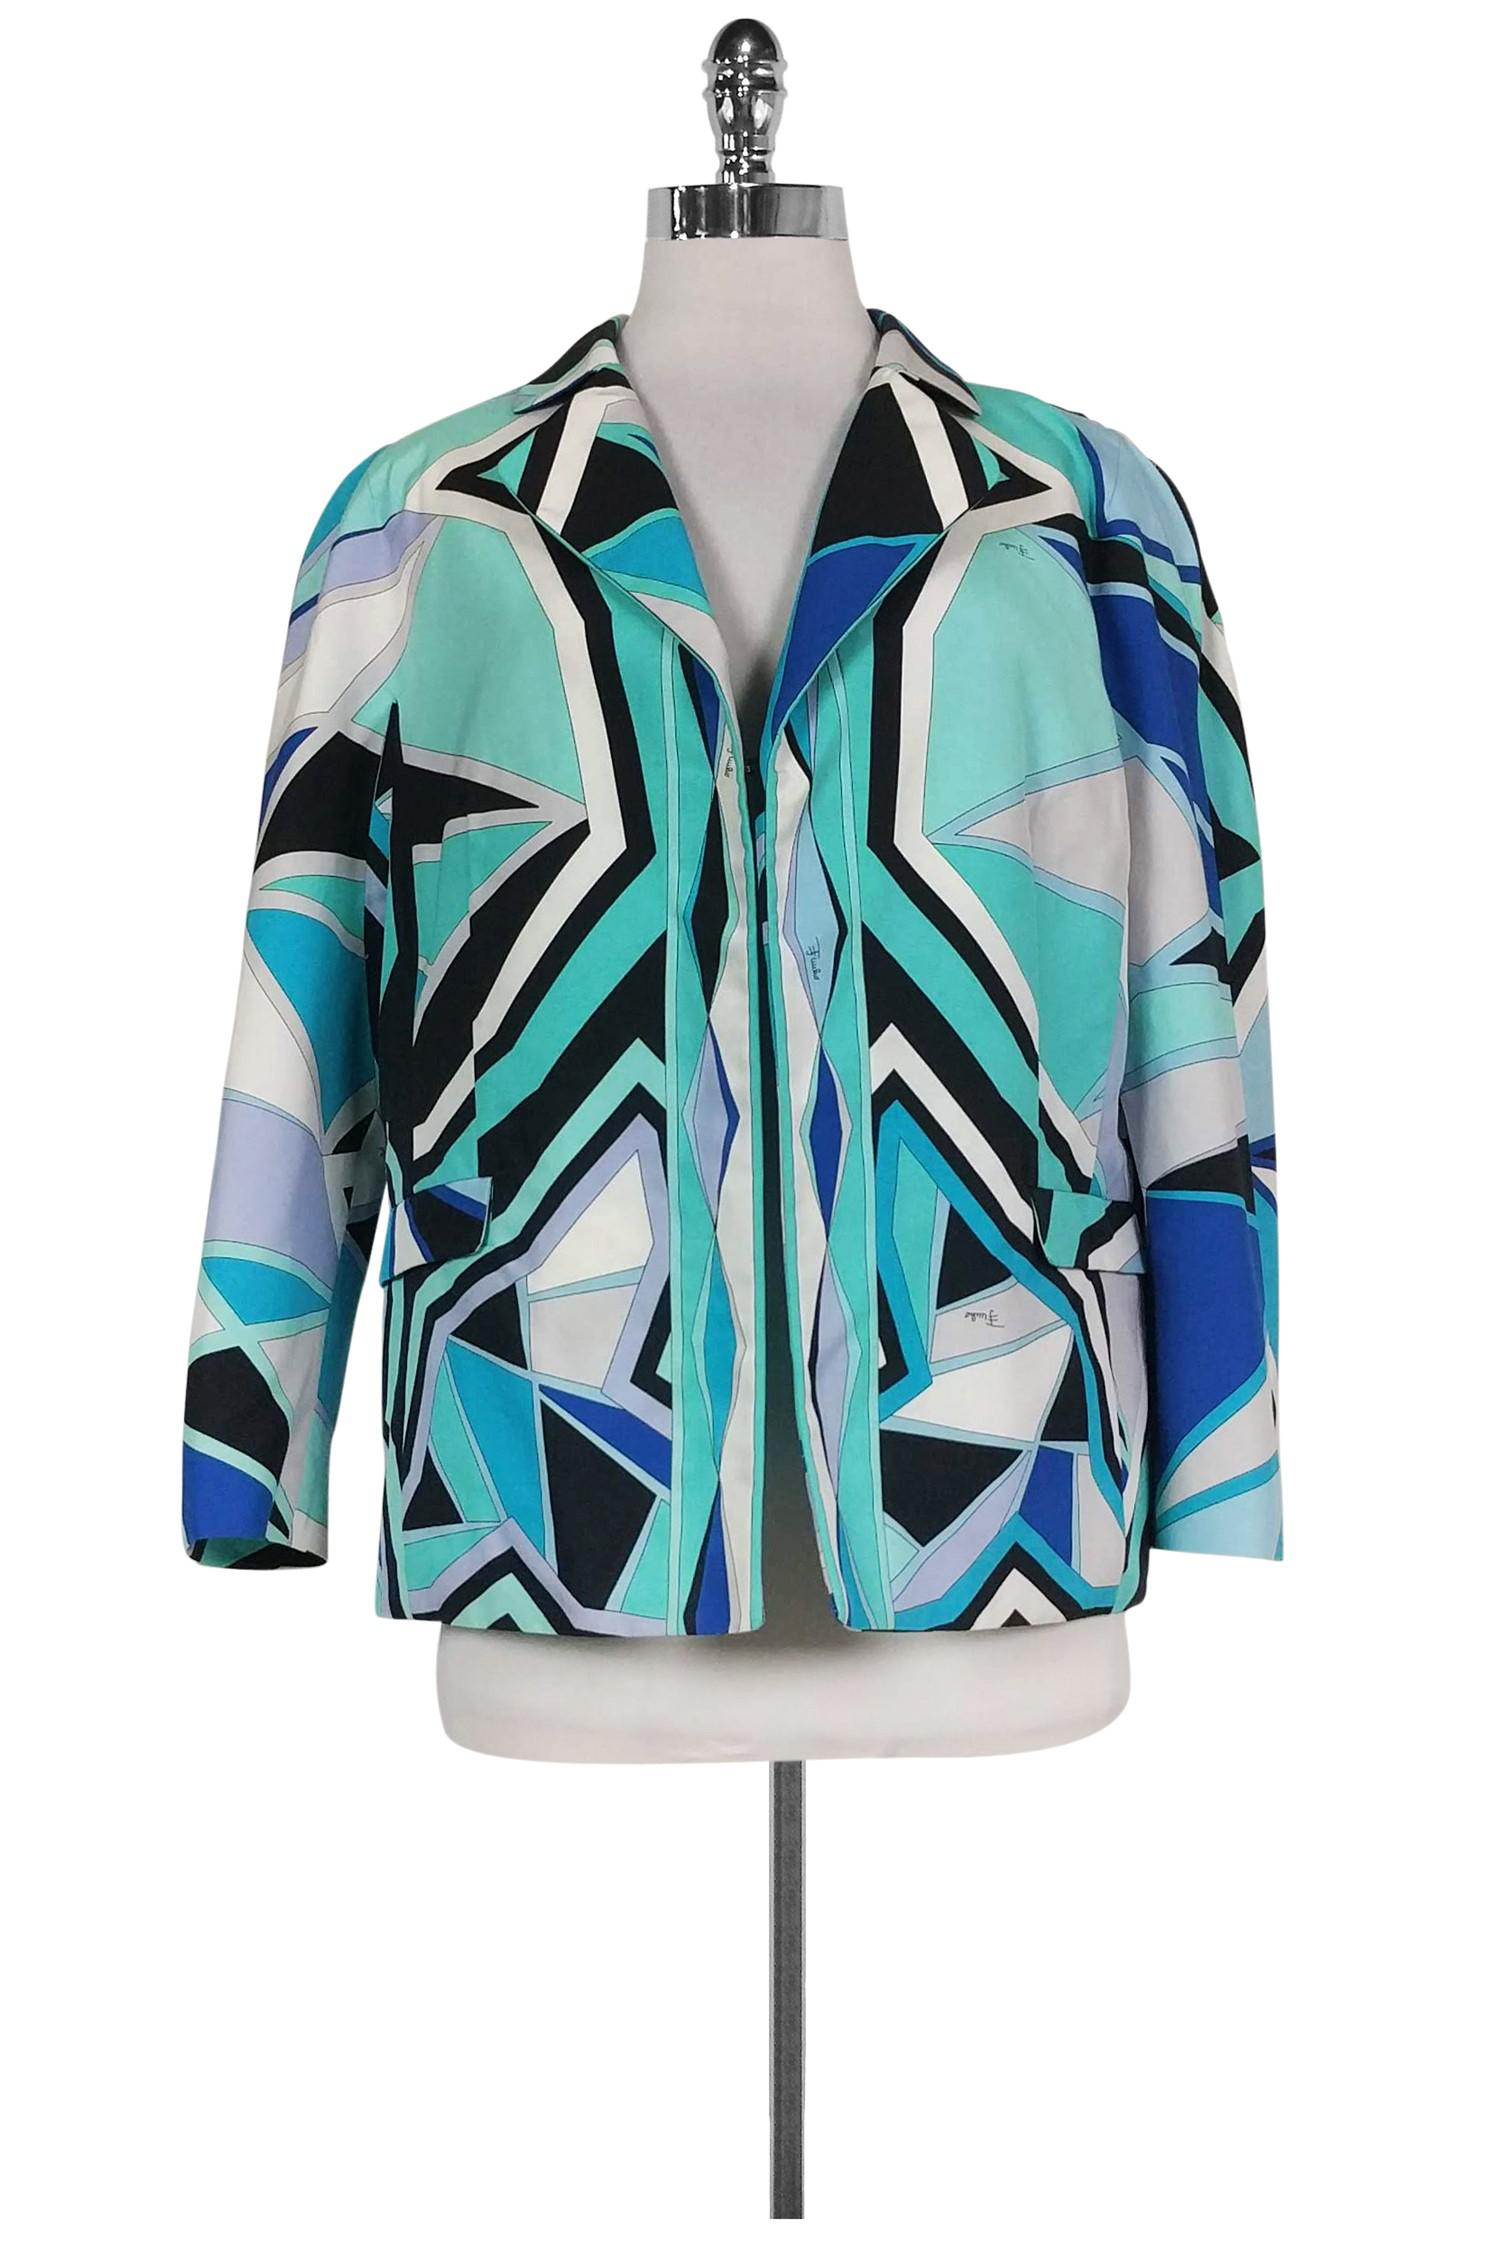 c0f51f4488ce Lyst - Emilio Pucci Multi-color Abstract Print Jacket in Blue